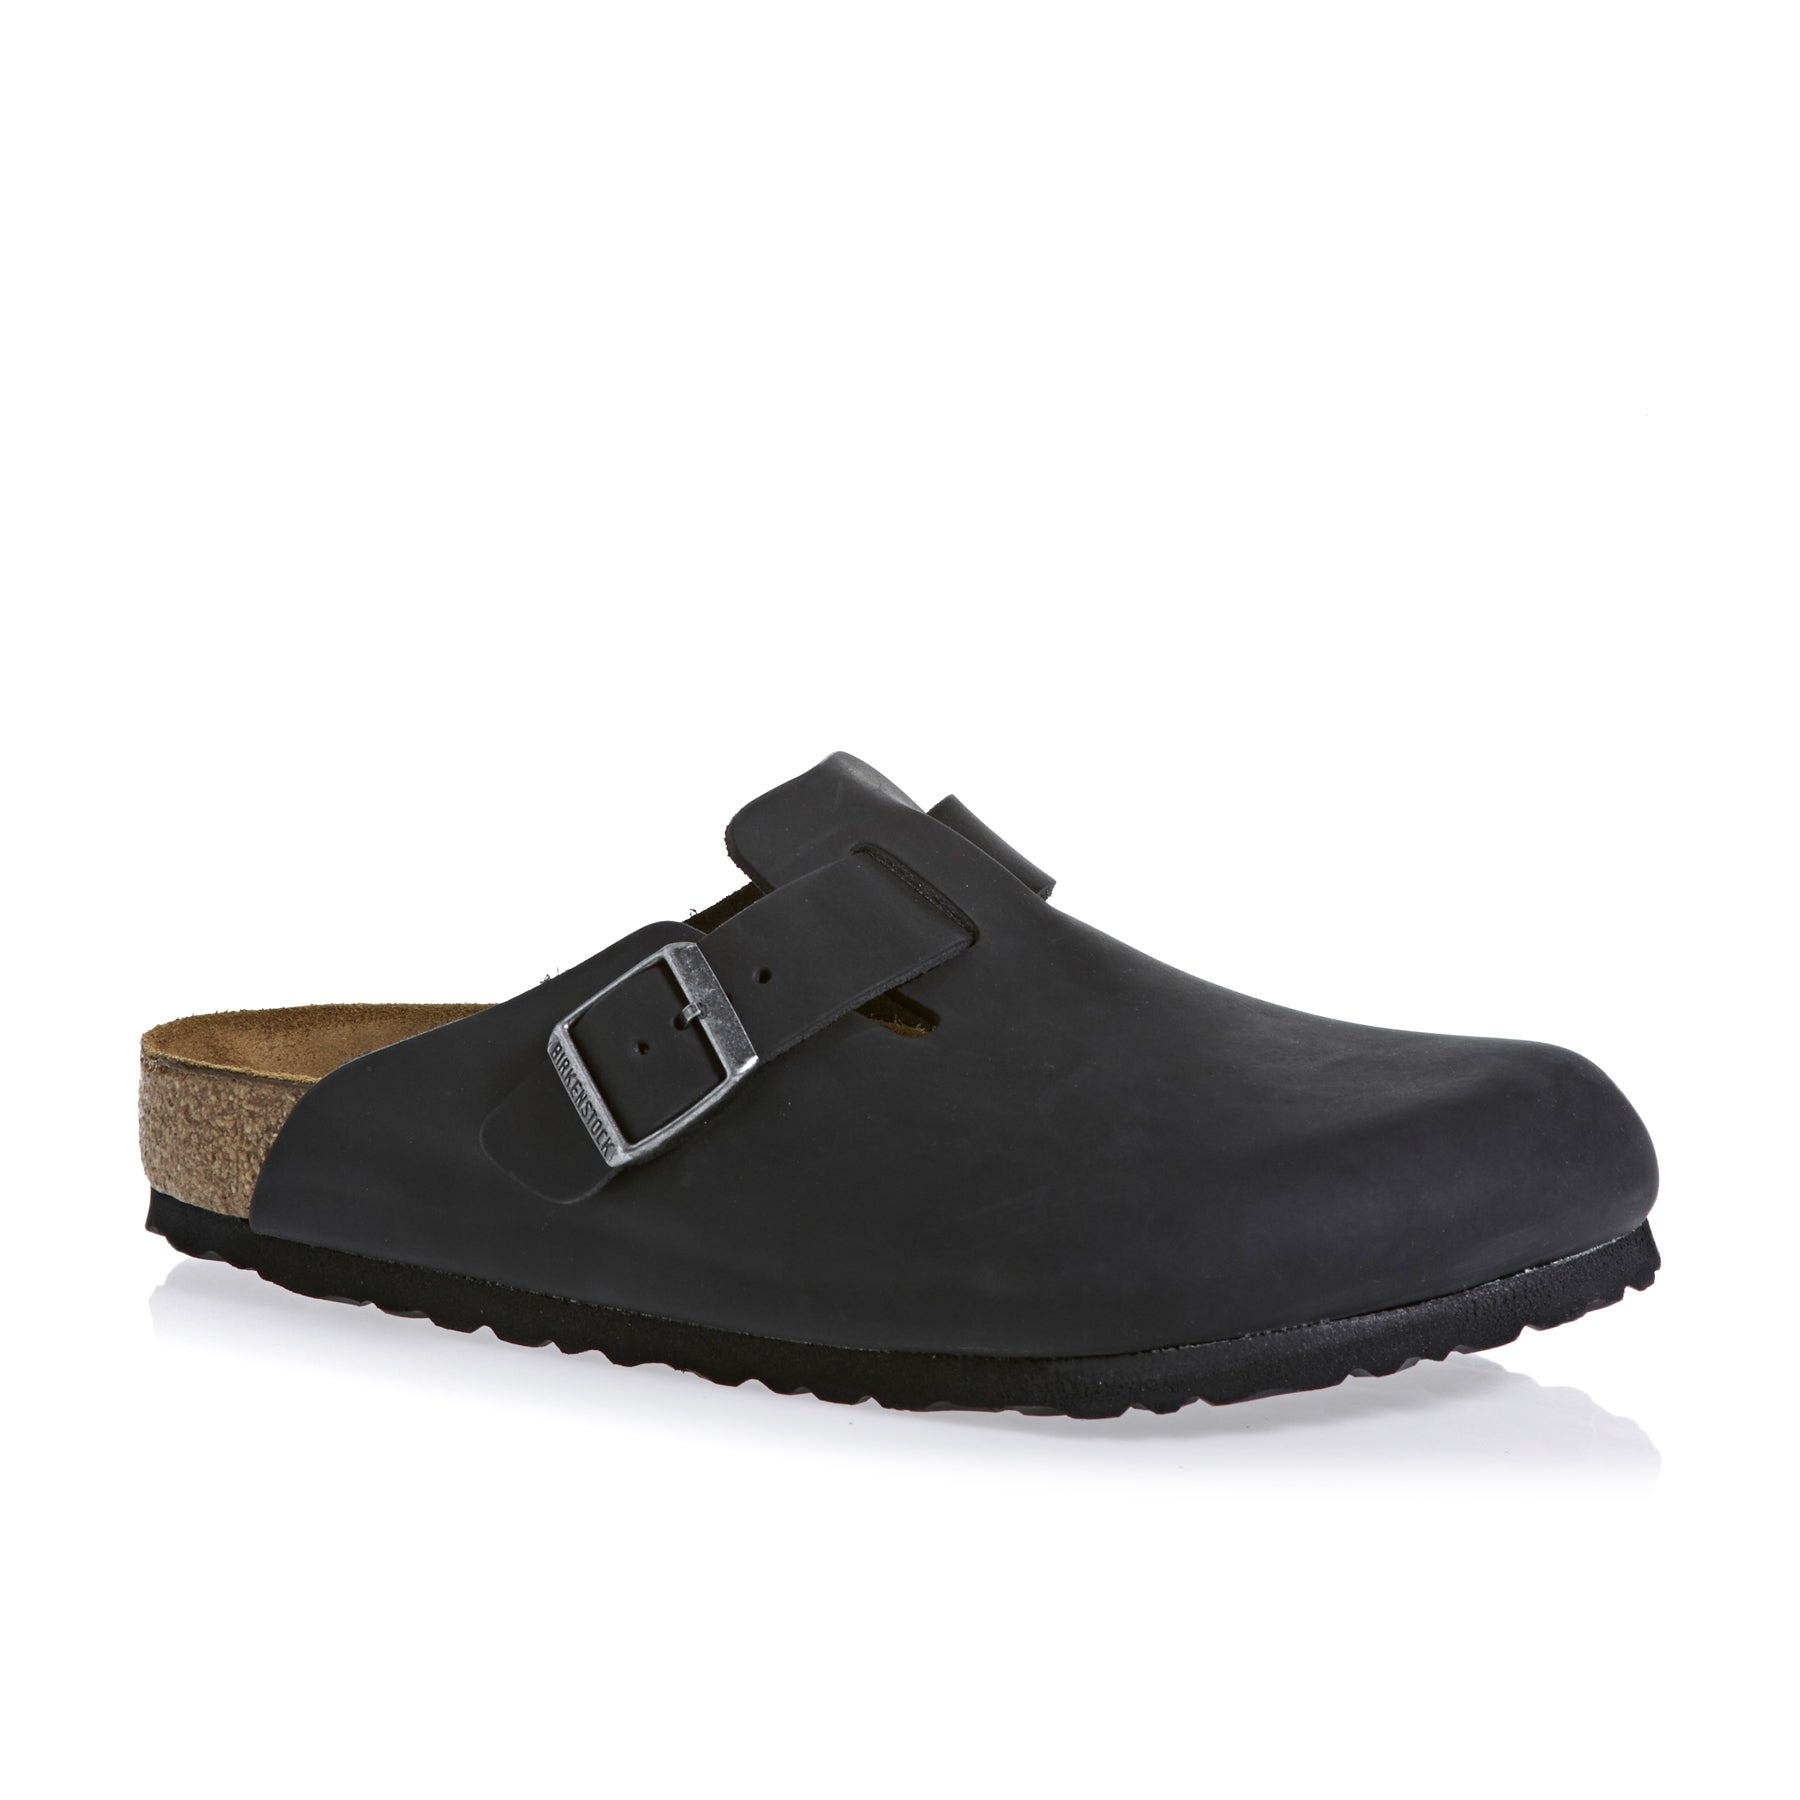 Birkenstock Boston Oiled Leather Slip On Shoes - Black Core